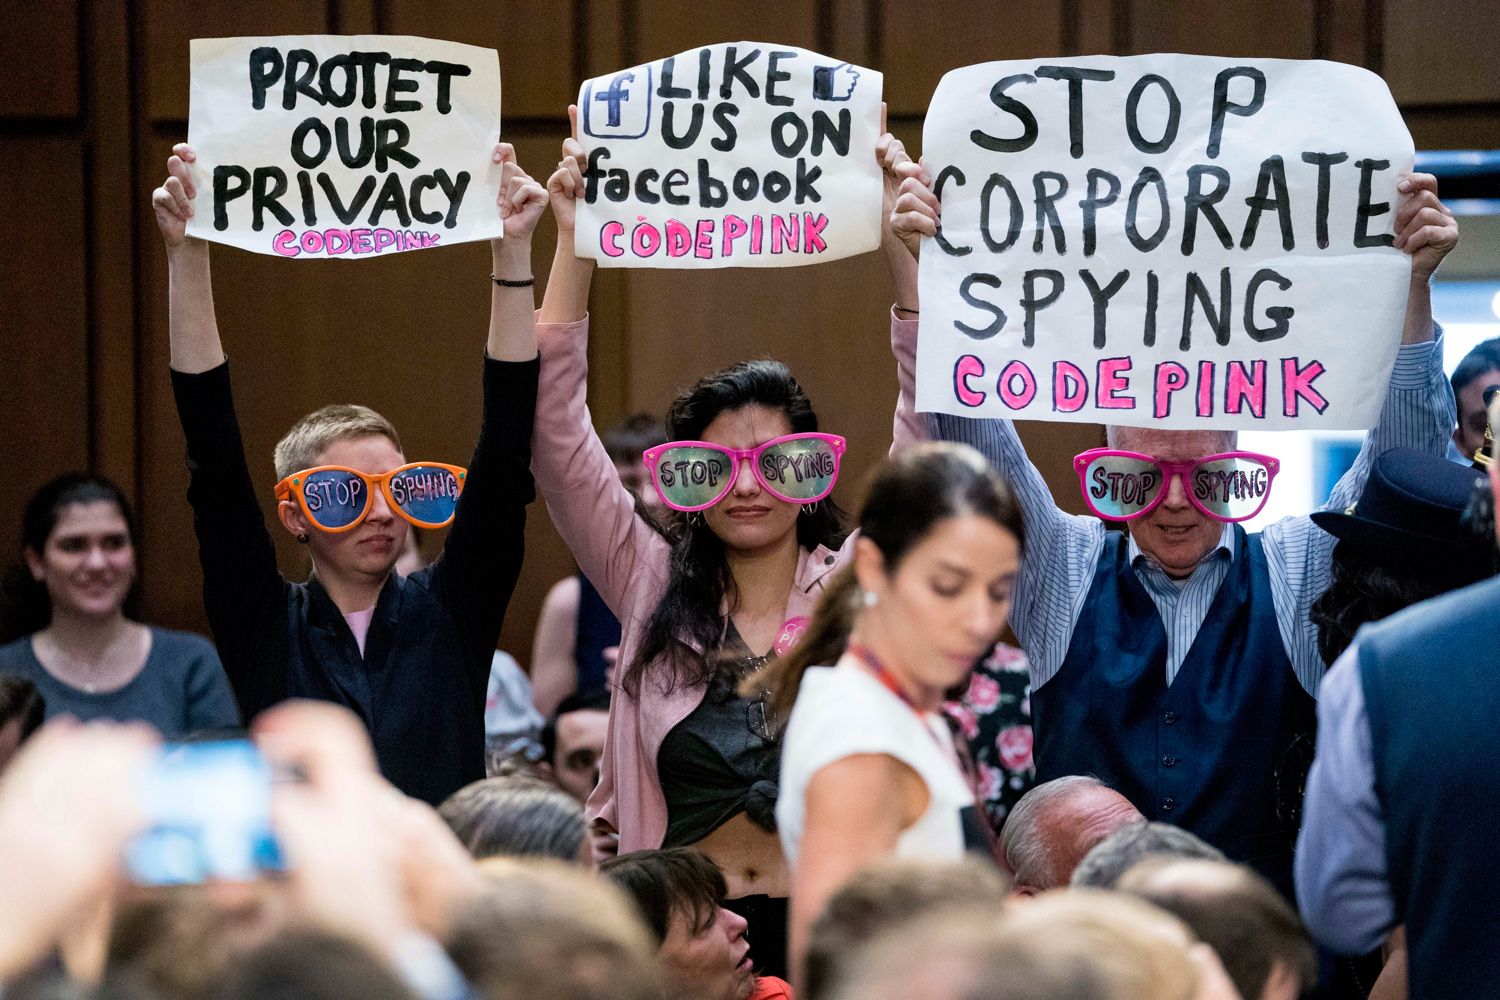 "<div class=""meta image-caption""><div class=""origin-logo origin-image none""><span>none</span></div><span class=""caption-text"">Members of the audience hold up signs and wear sunglasses that read ""Stop Spying"" before CEO Mark Zuckerberg arrives to testify. (Andrew Harnik/AP Photo)</span></div>"